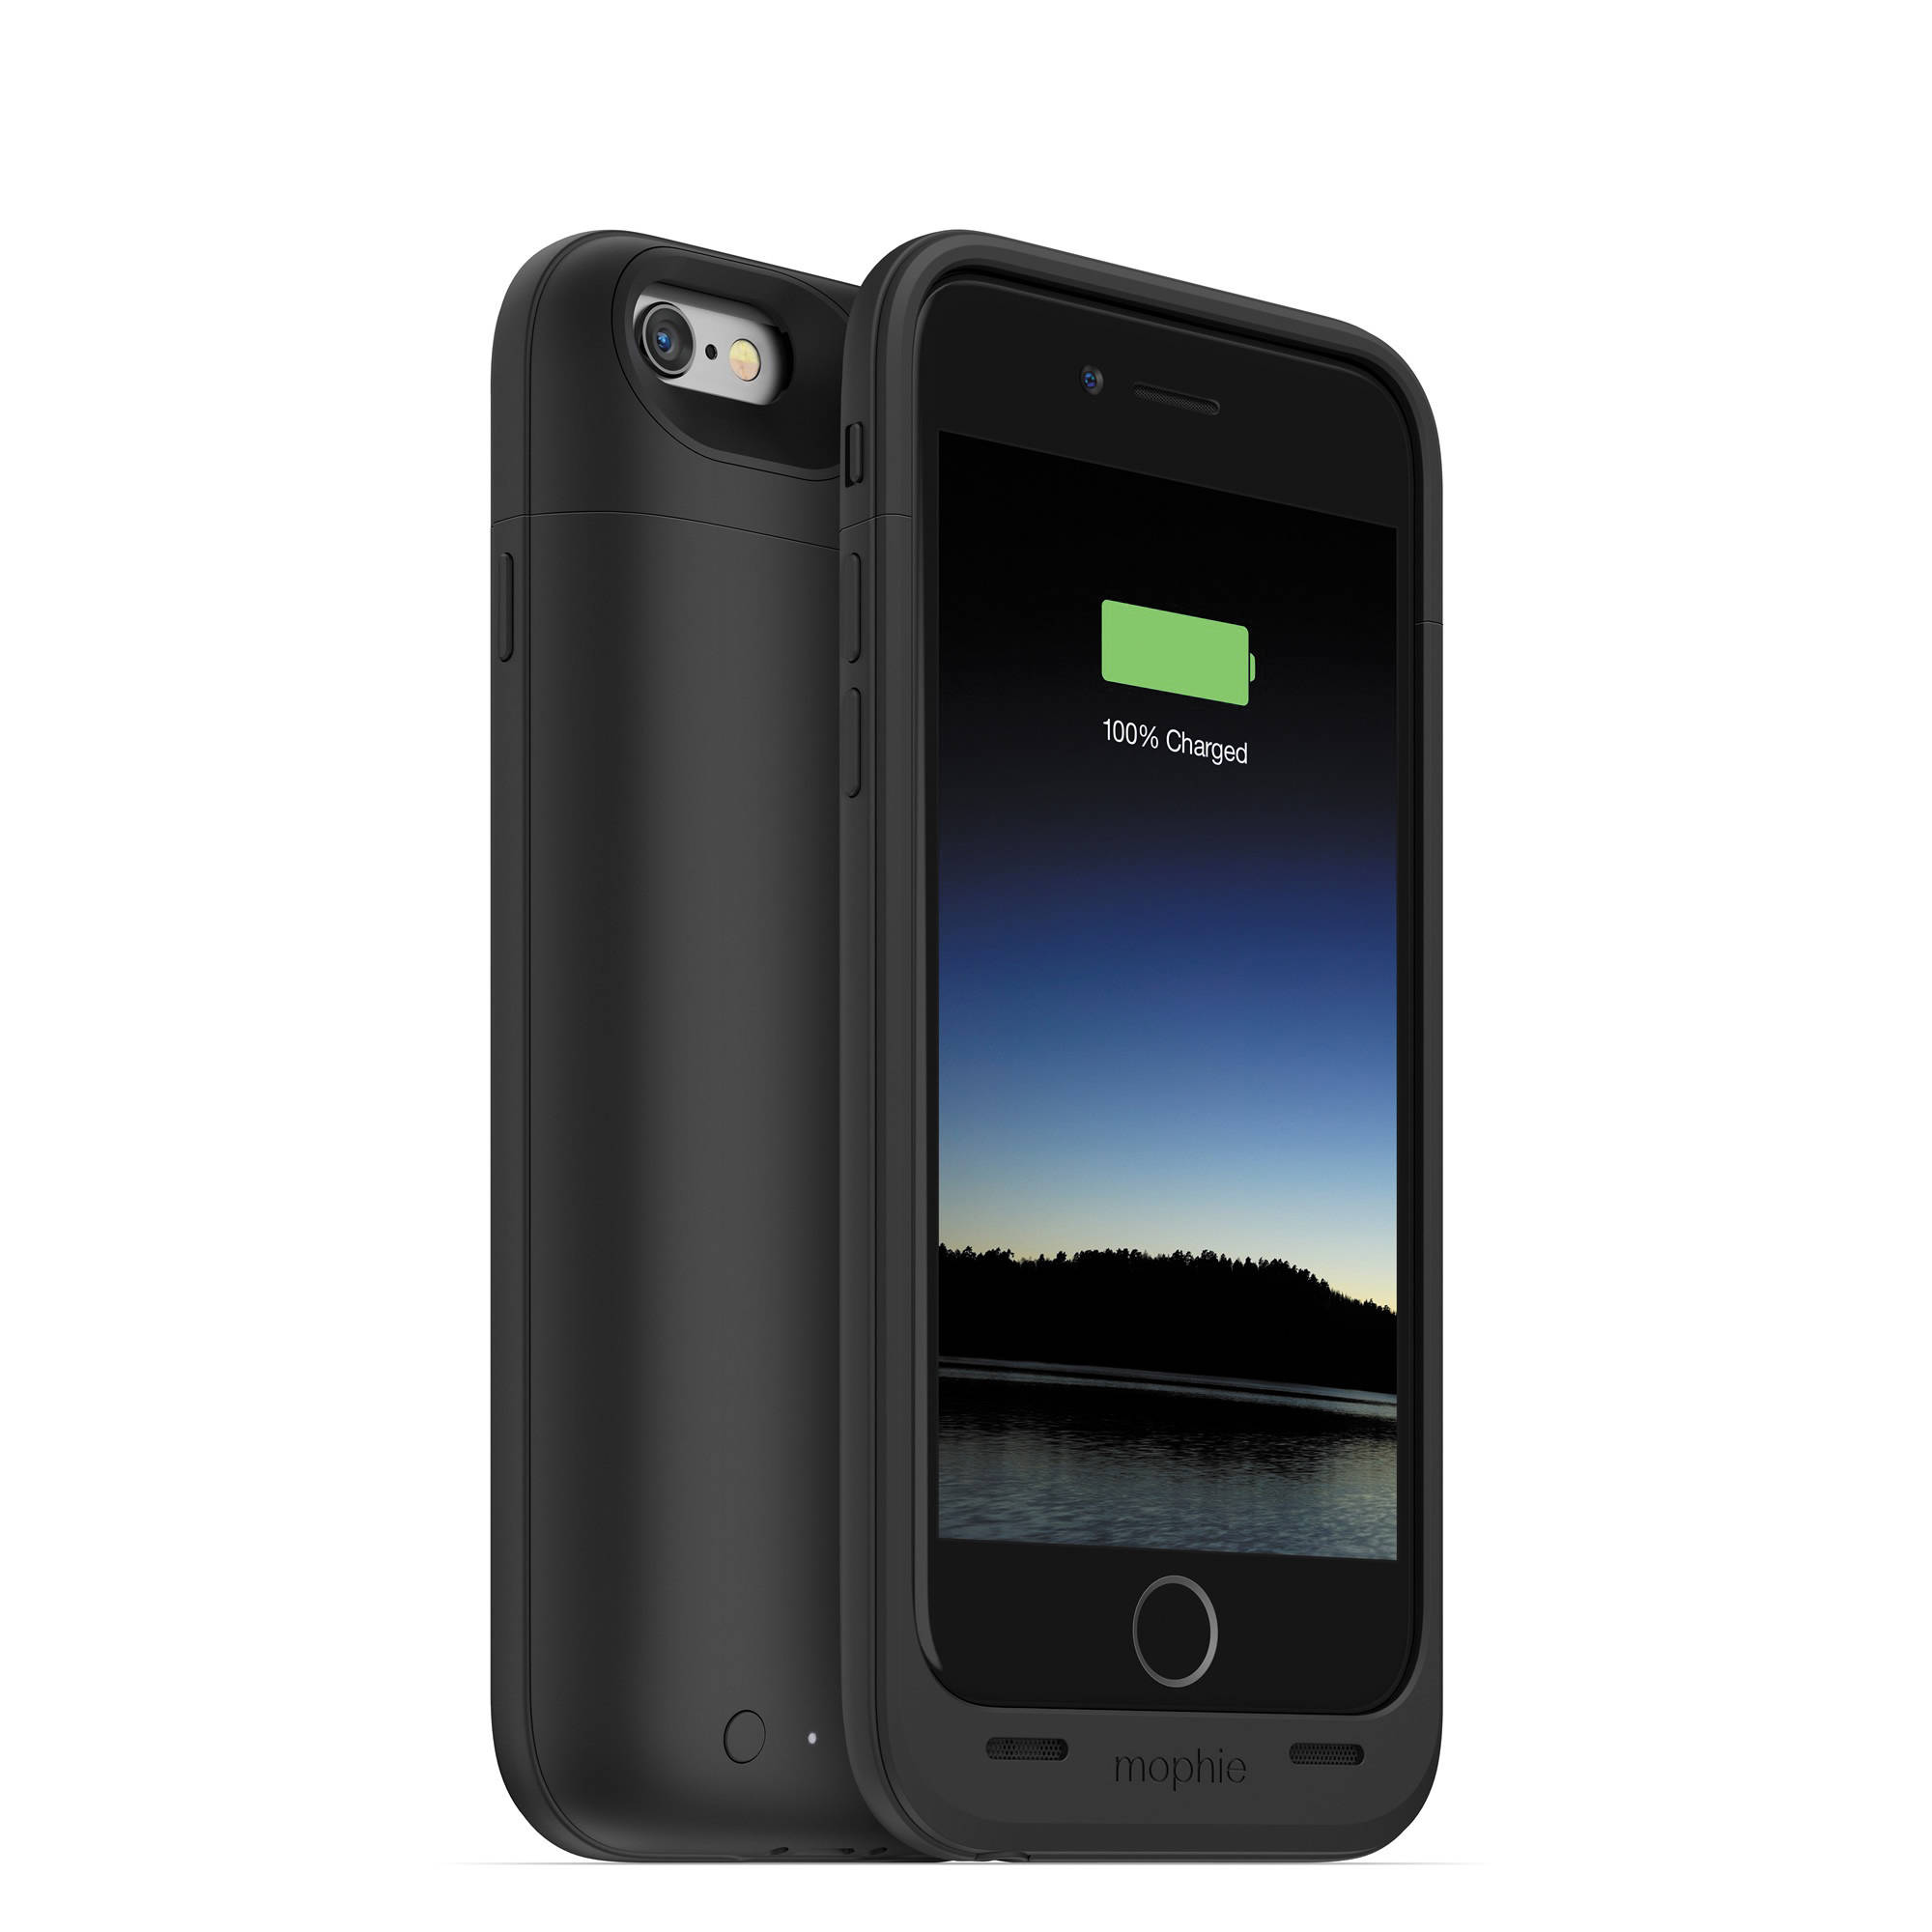 mophie juice pack air for iPhone 6/6s (Black) 3043 B&H Photo